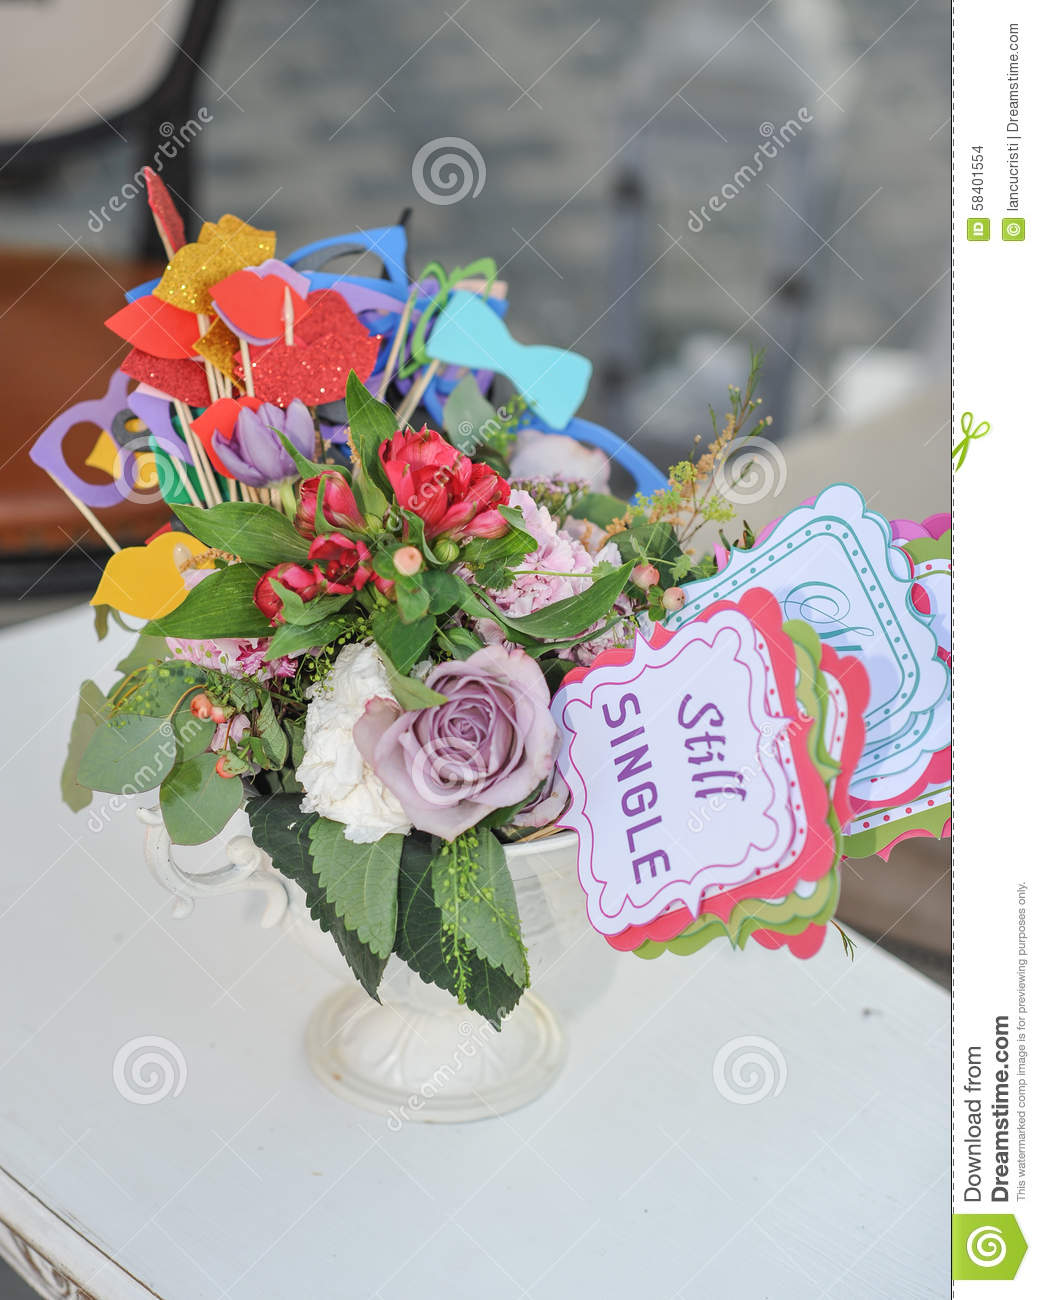 a vase of flowers descriptive essay Gifts giving essay submitted by: dorislee if someone has just moved into a new house, it would be appropriate to give a vase, as it sounds like peace if someone opens a store or starts a business, give the bamboo flower as a gift.